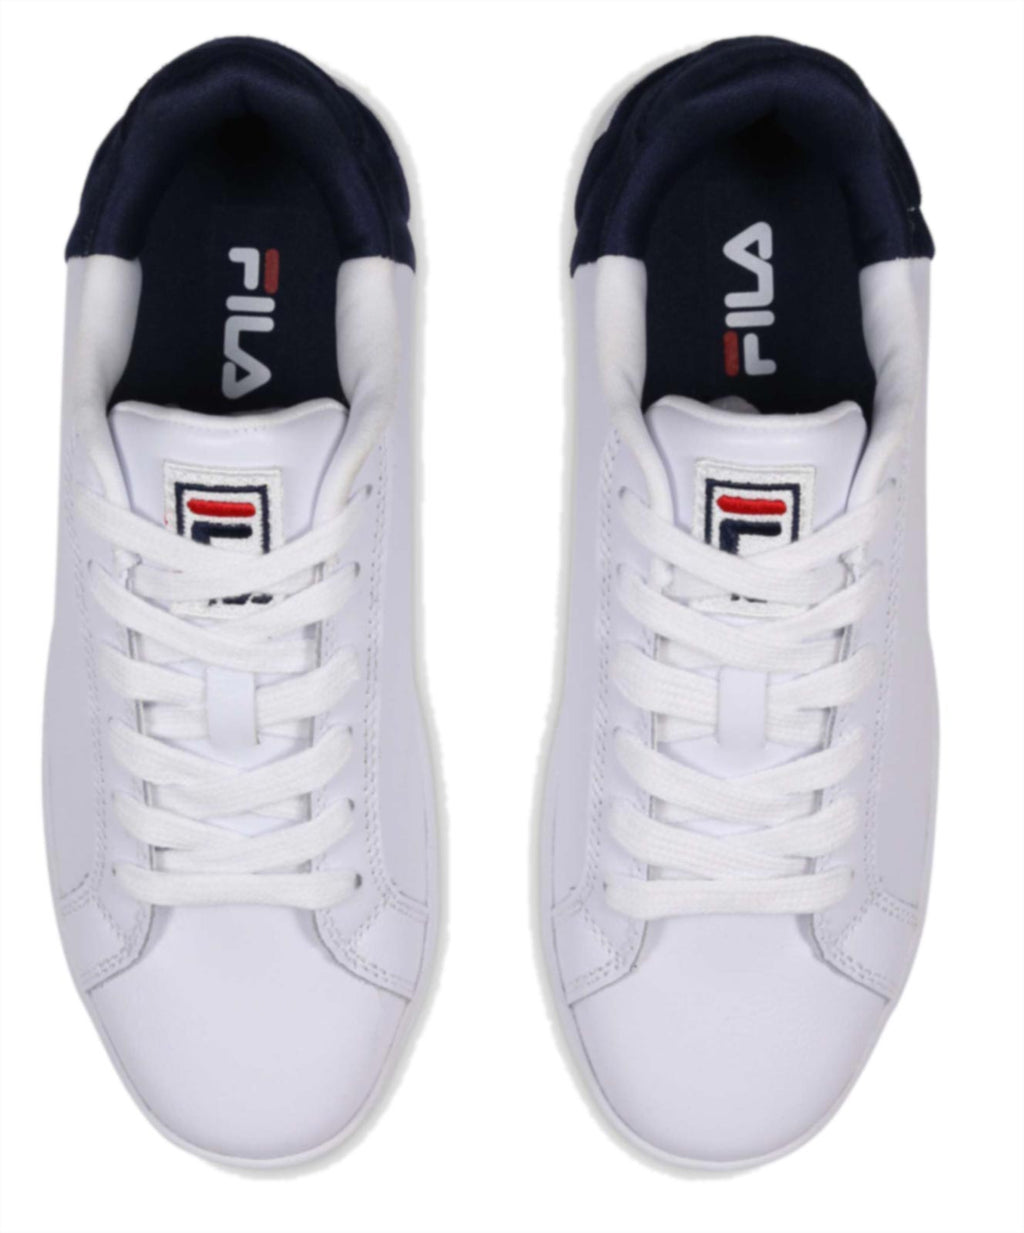 Fila Ryzer Trainers	White/Navy/Red